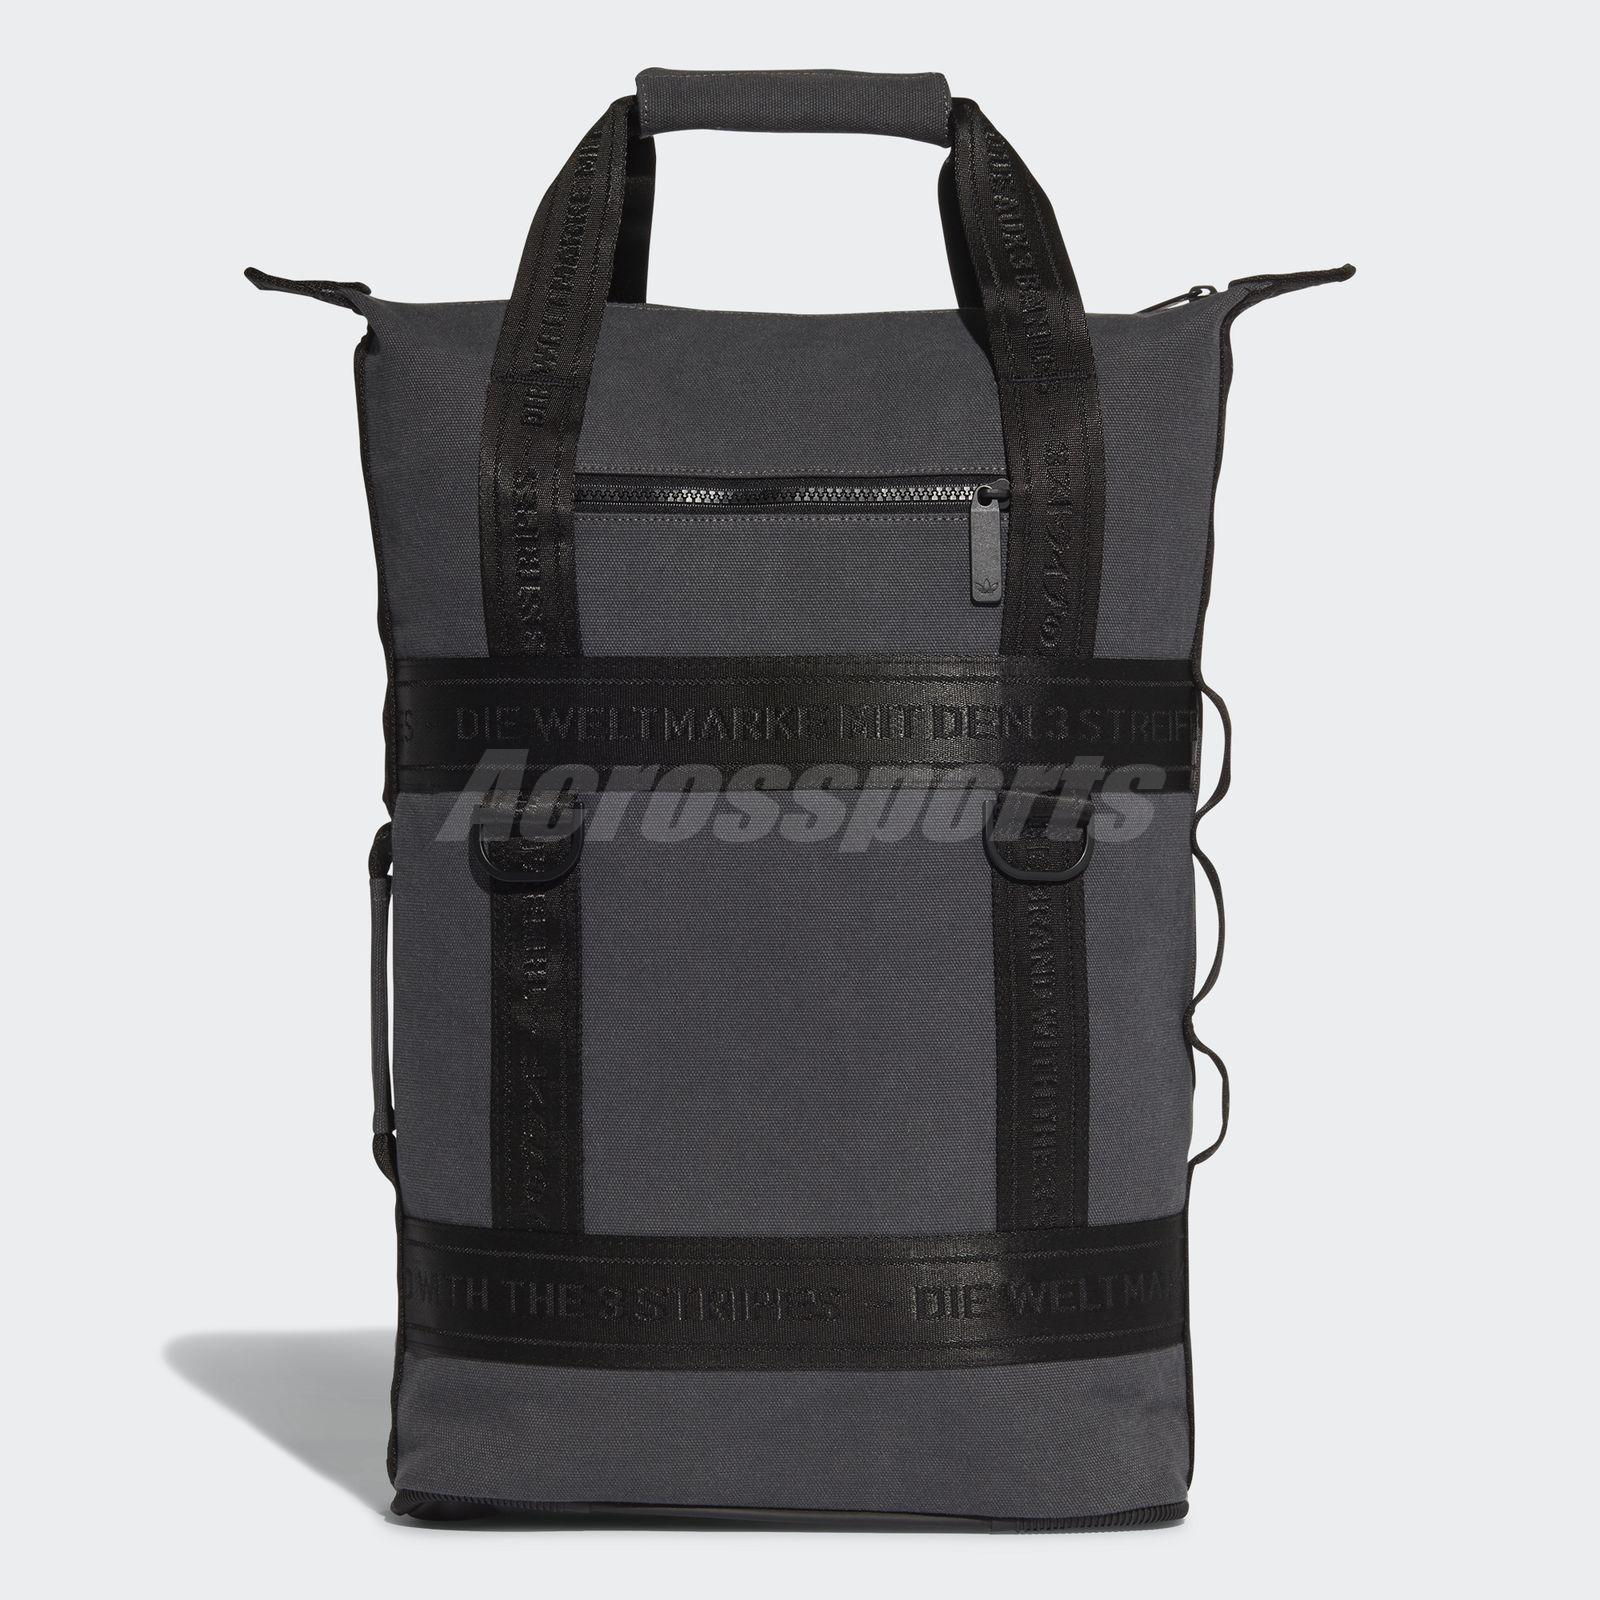 Details about adidas NMD Backpack Grey Black Bag Sport Casual 3 stripes  CE2362 0b649a1be76c2